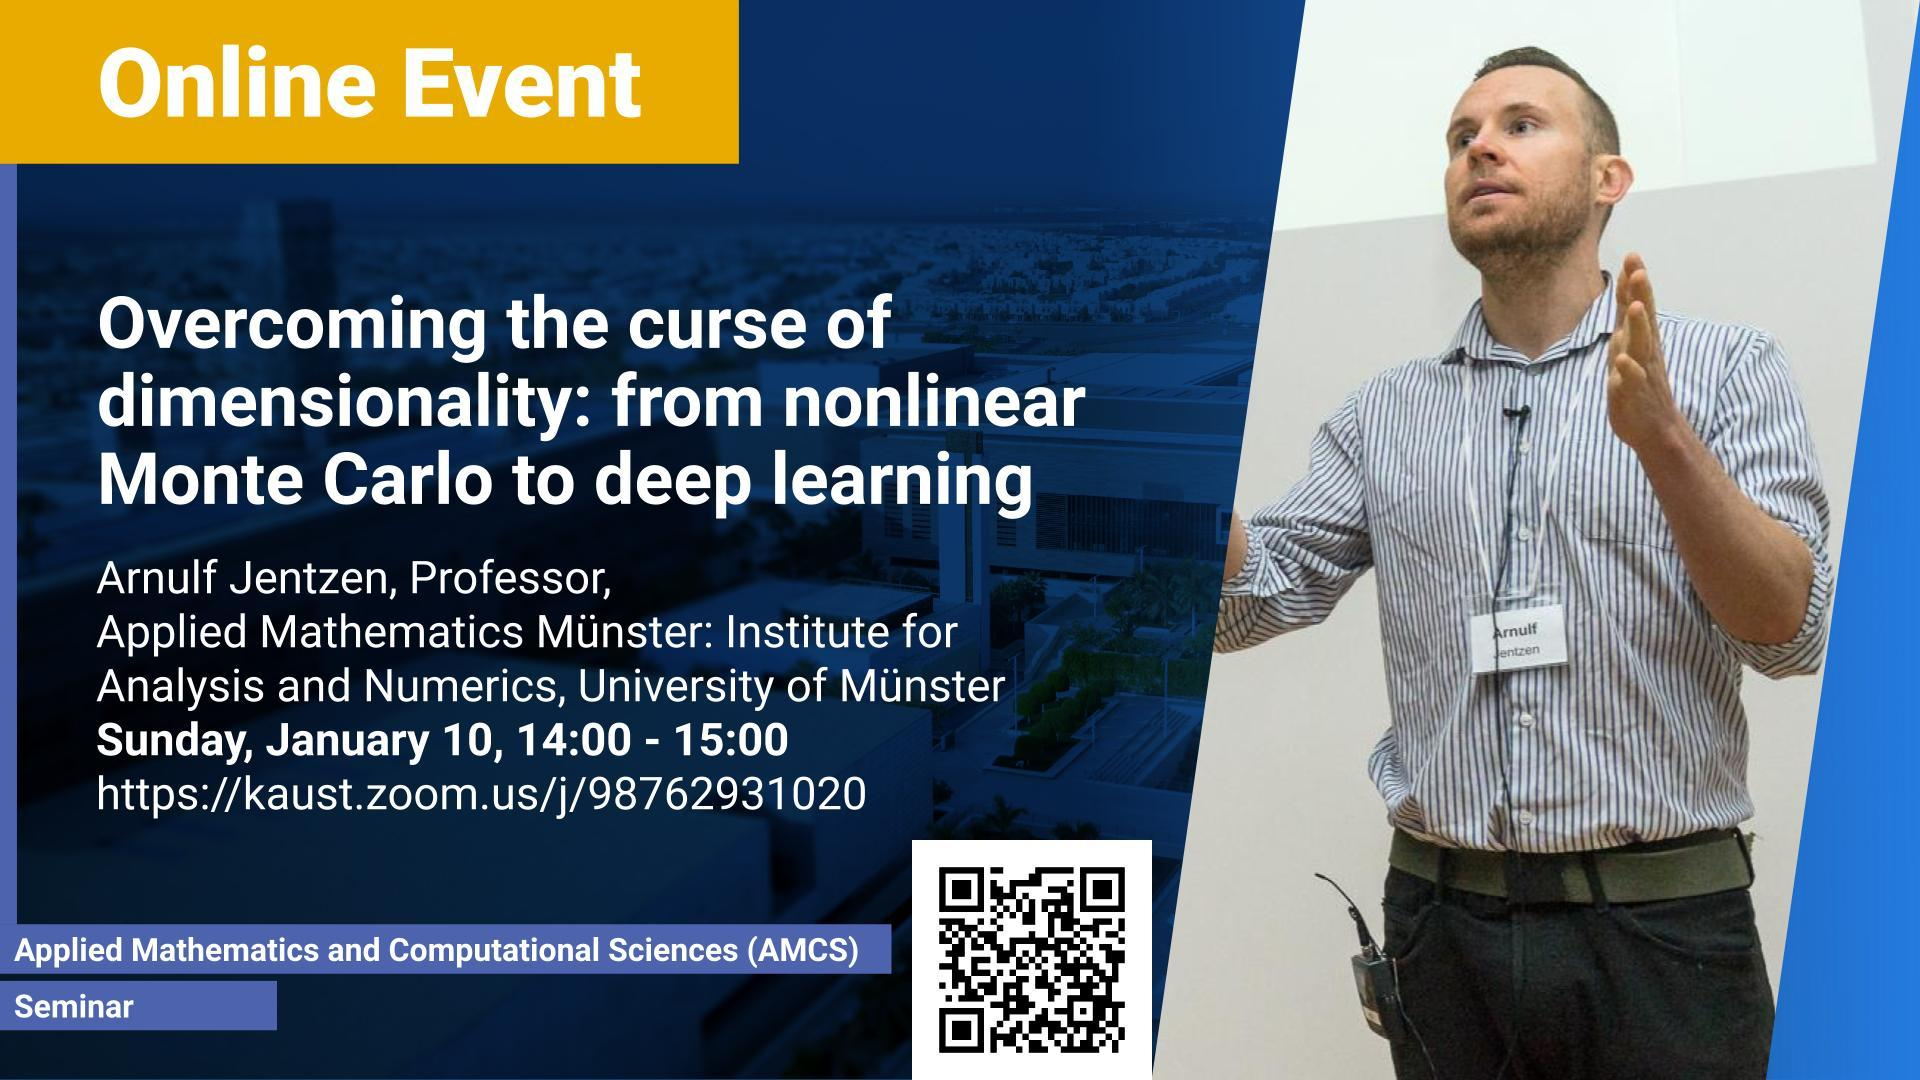 KAUST CEMSE AMCS Seminar Arnulf Jentzen Overcoming the curse of dimensionality: from nonlinear Monte Carlo to deep learning